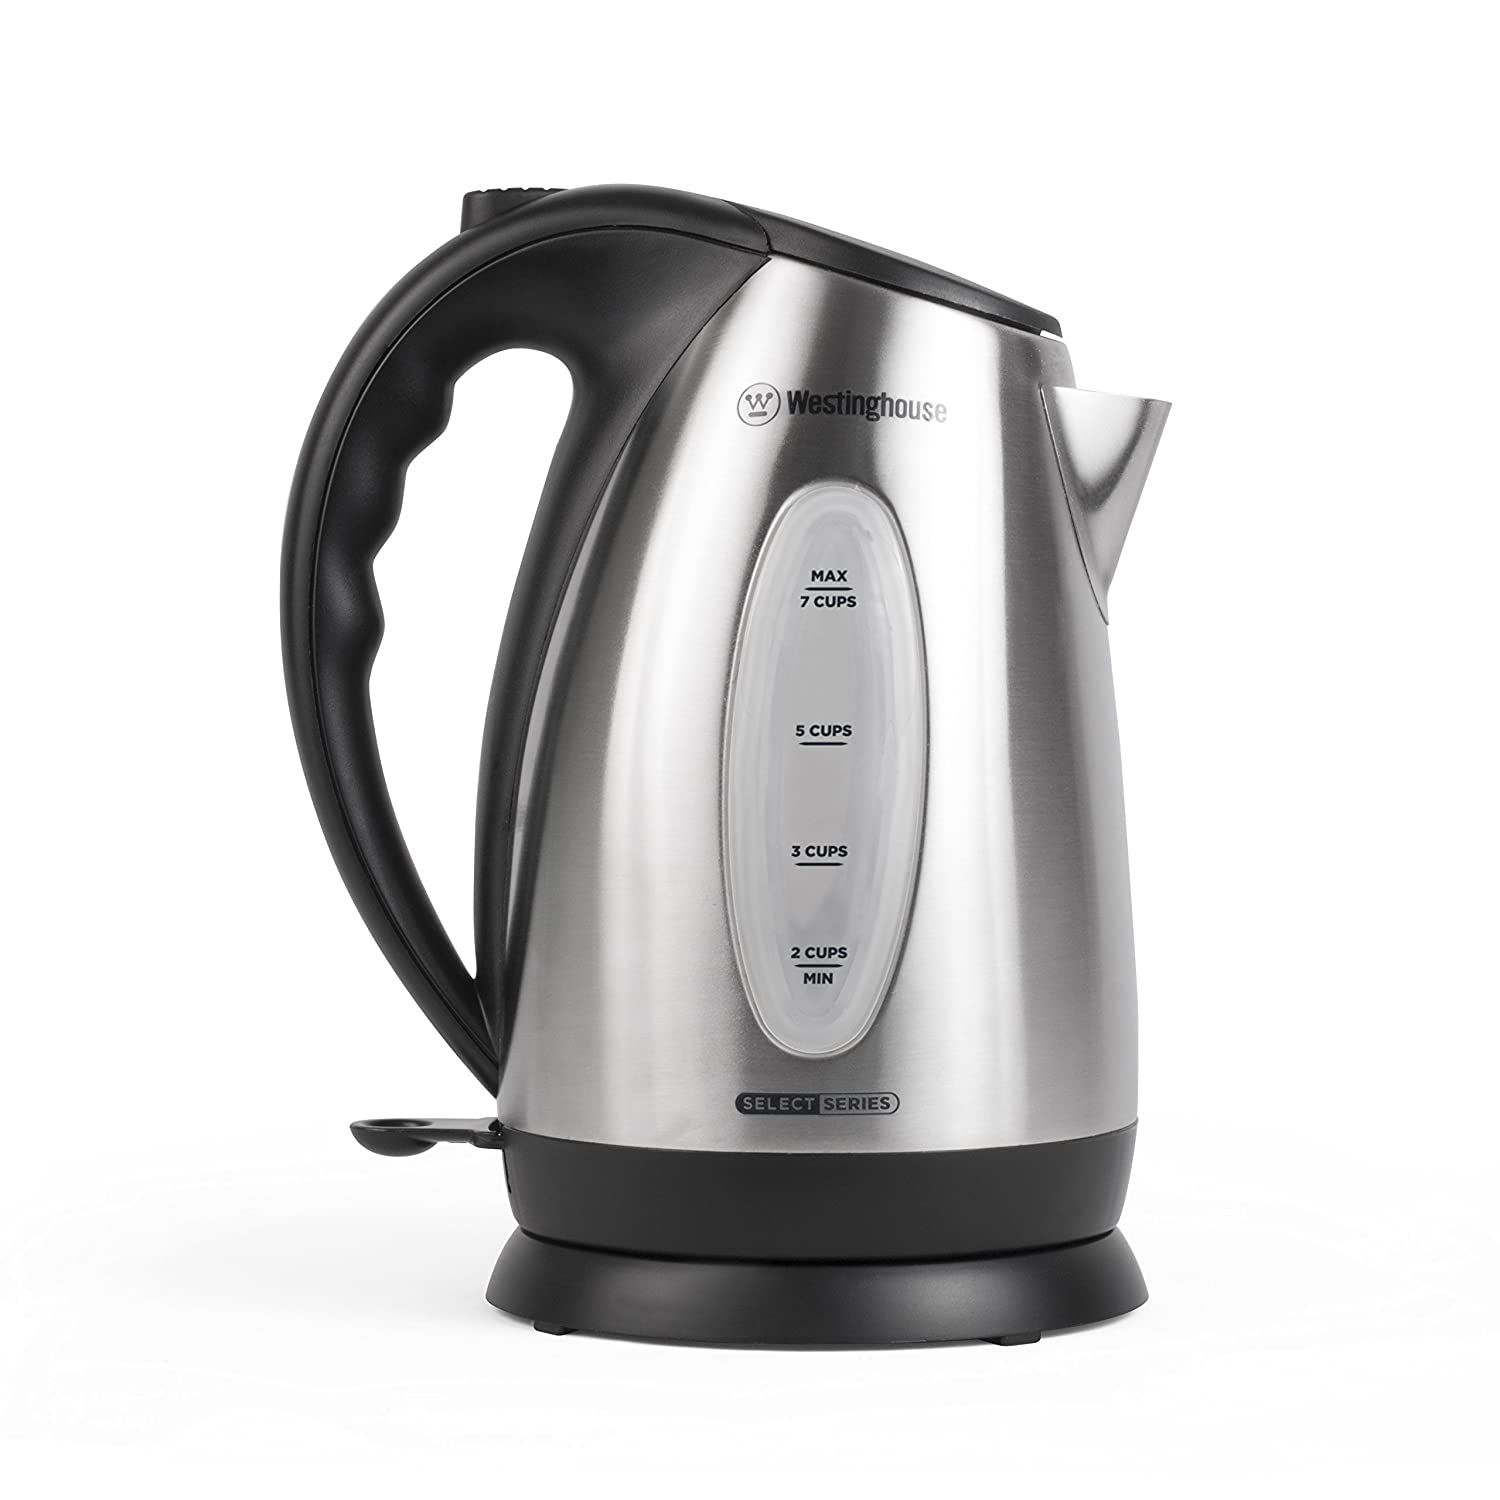 Westinghouse WKE10SSA Select Series 7 Cup Stainless Steel Electric Kettle, 1.7 Liter